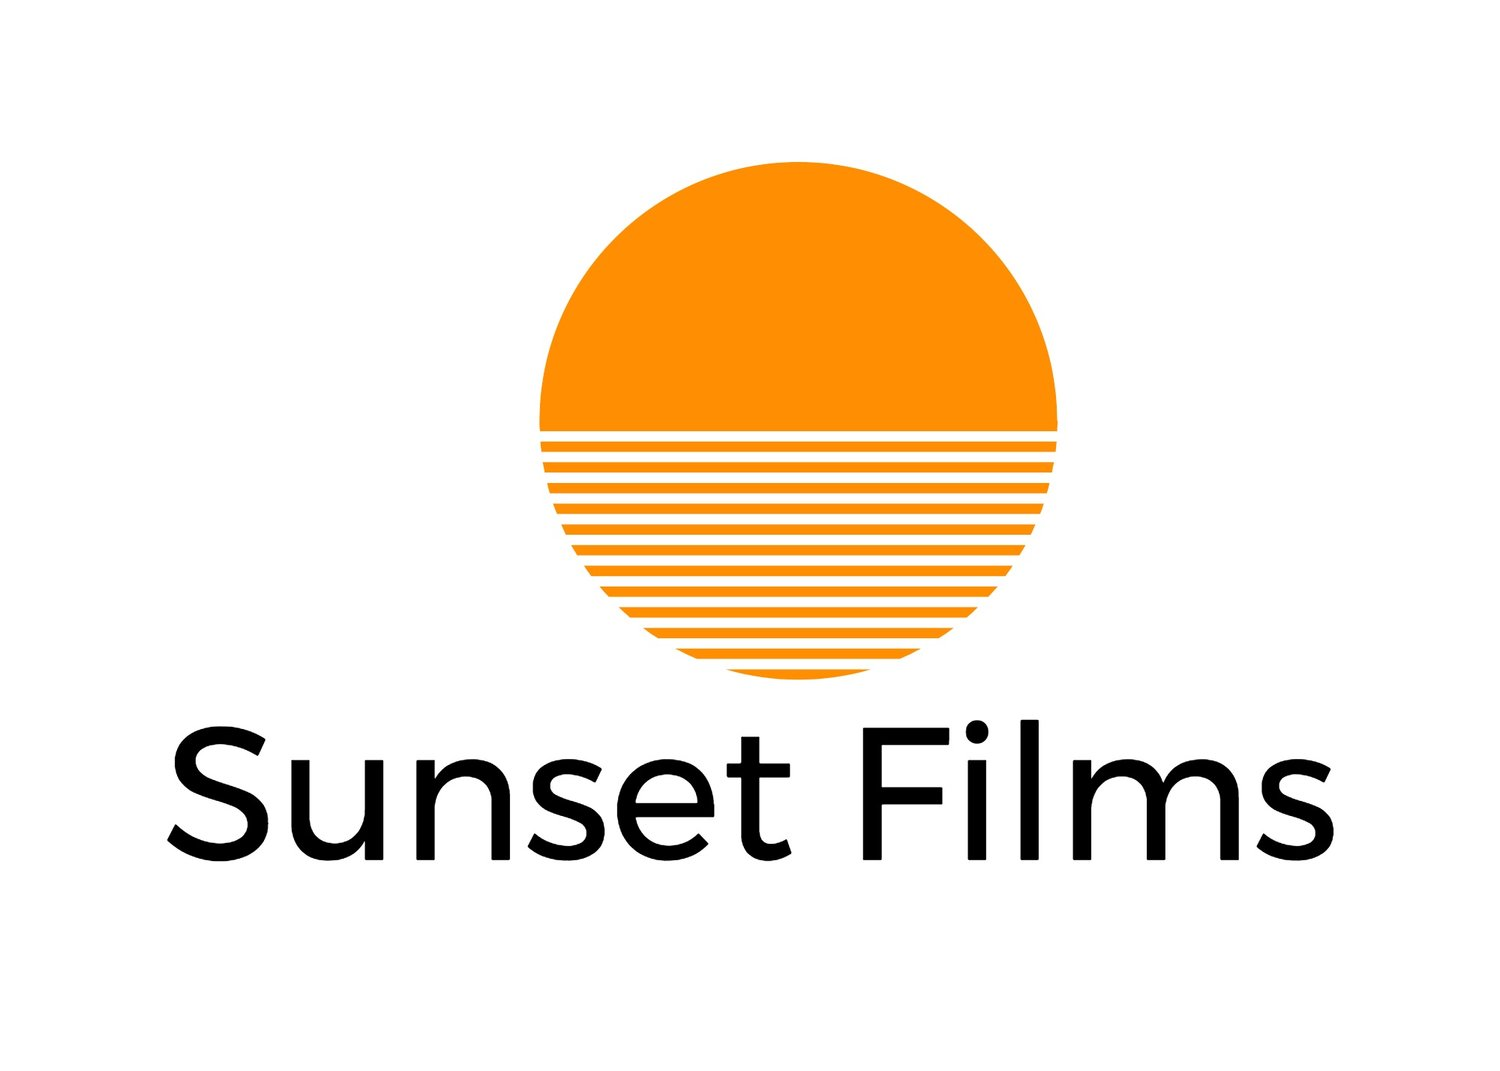 Sunset Films